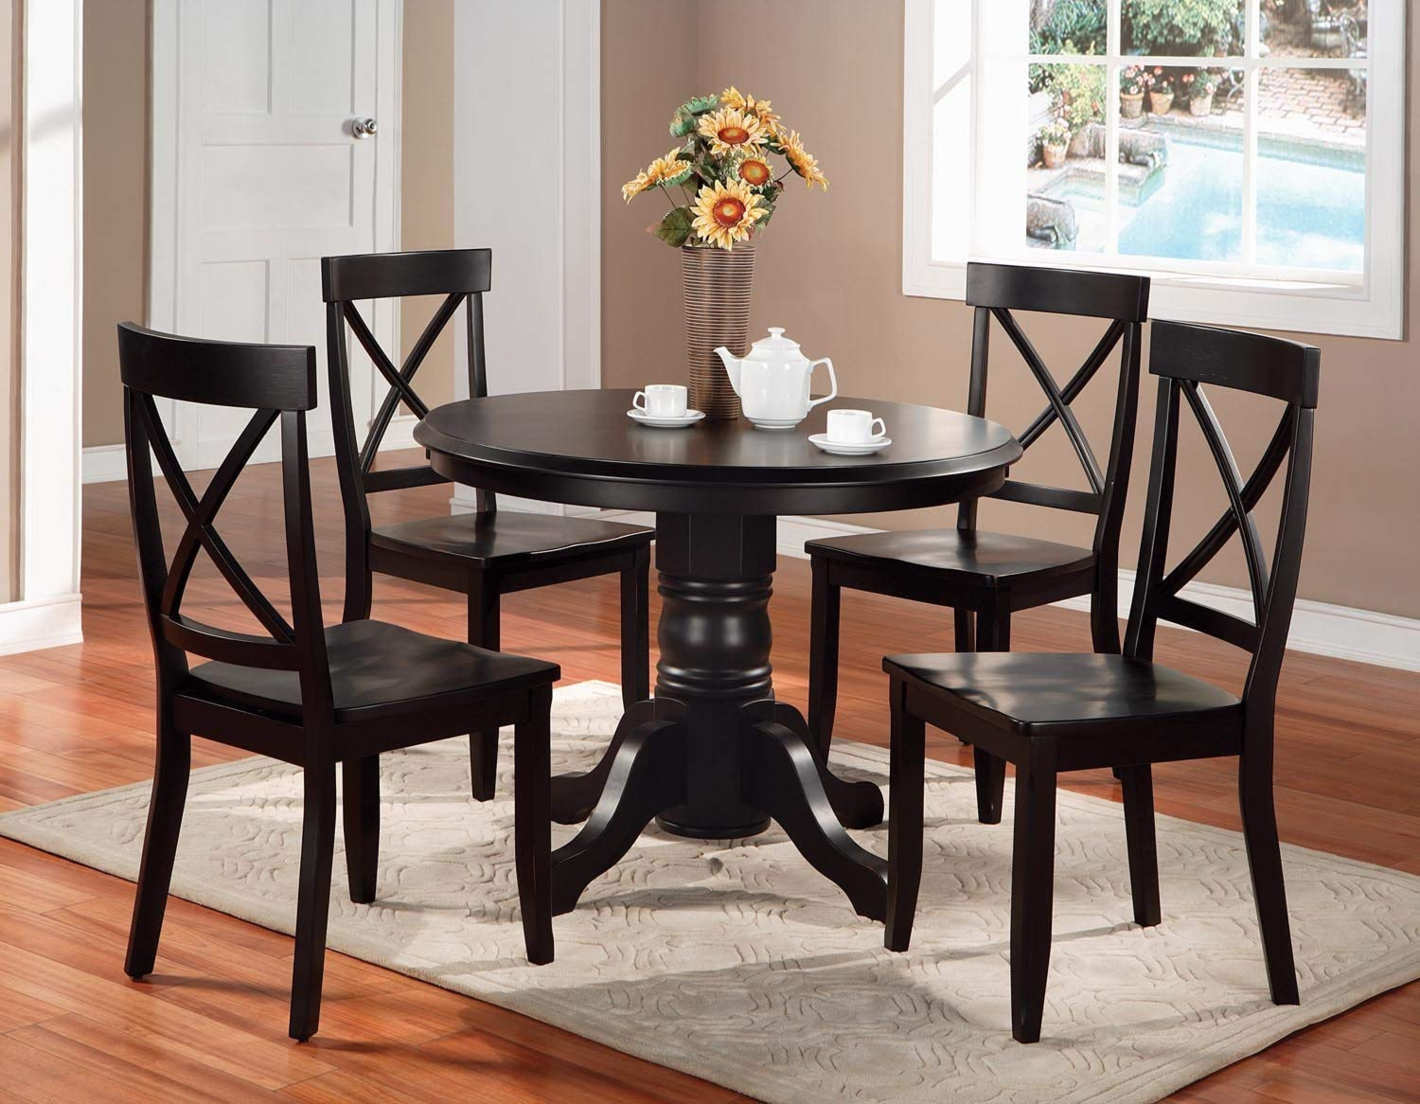 Breakfast Room Tables Home Styles 5 Piece Dining Set Black Finish